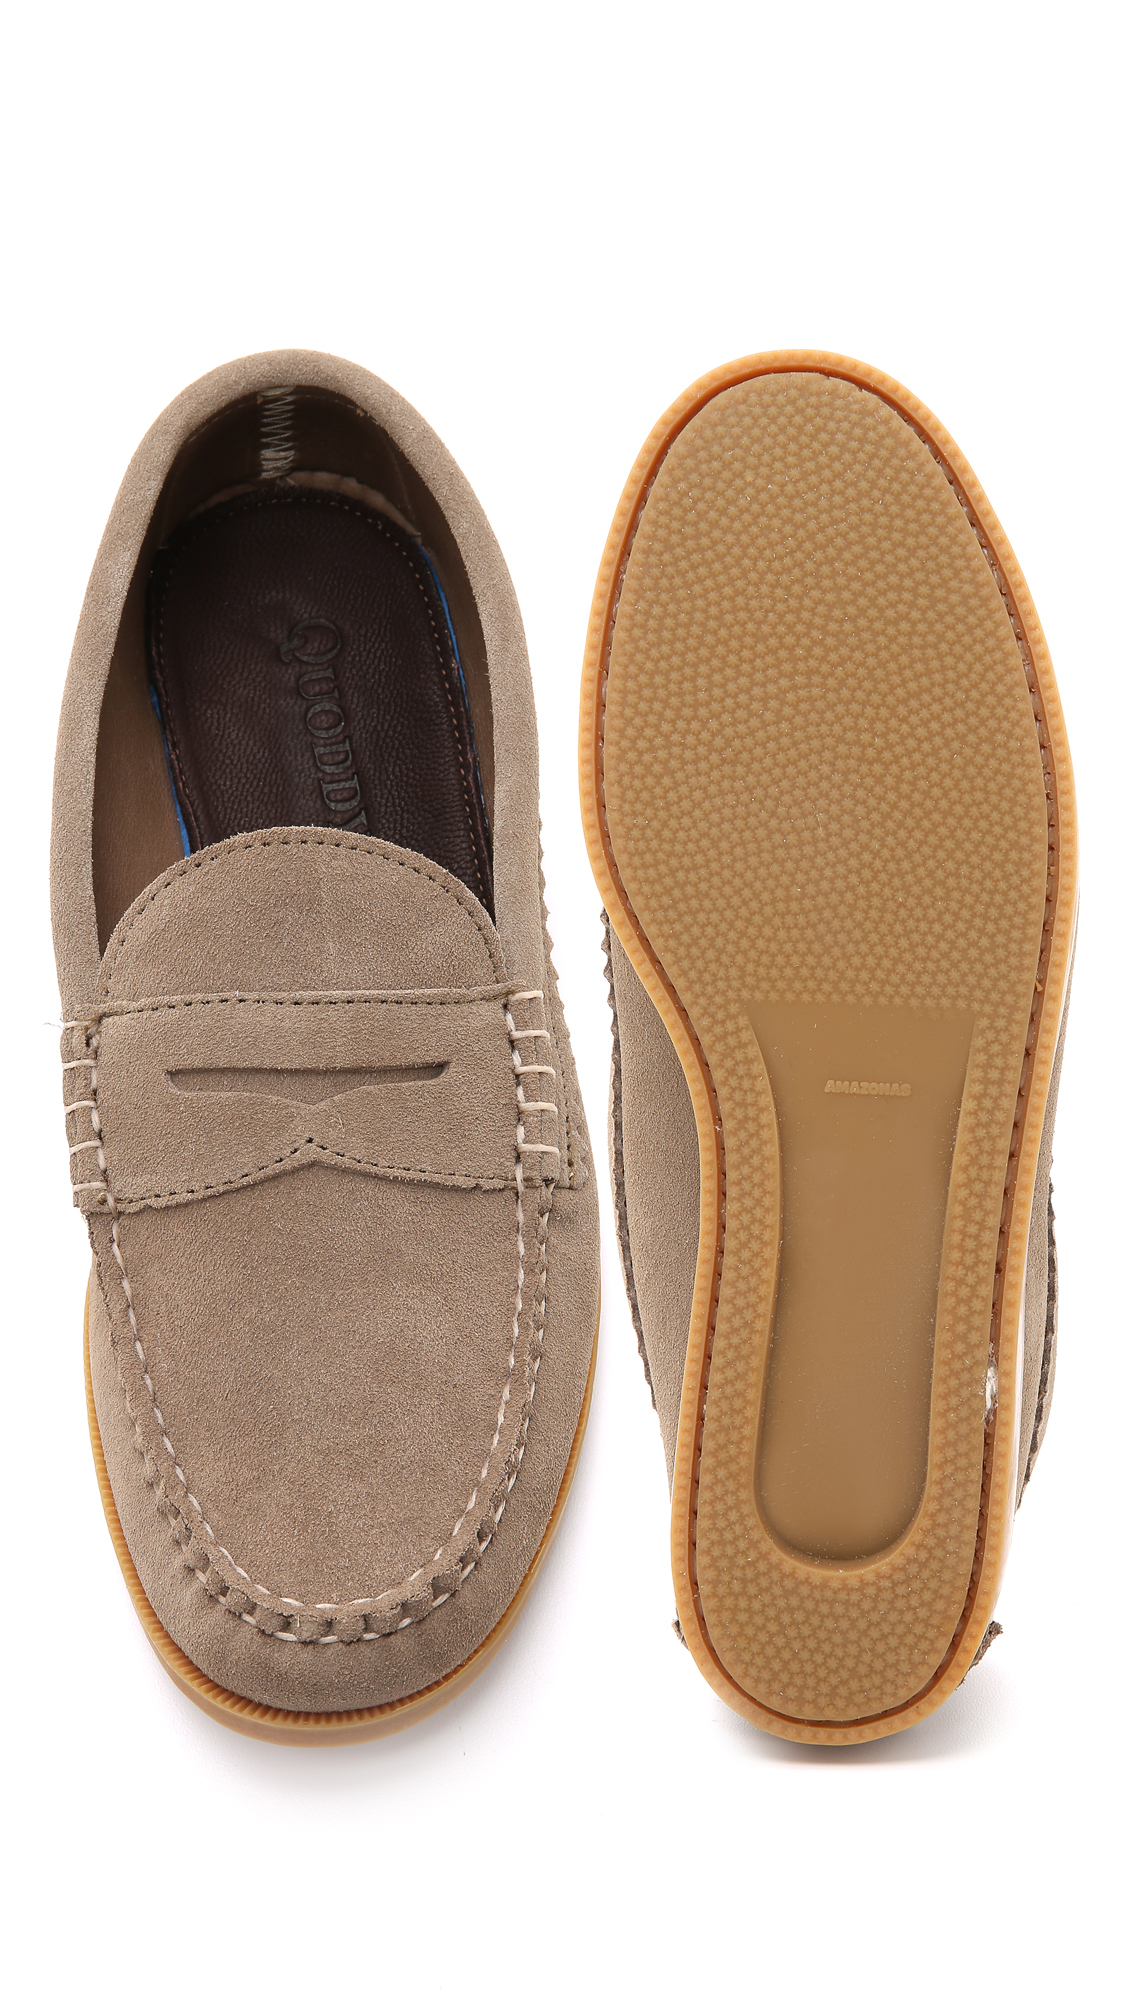 Quoddy Shoes Uk